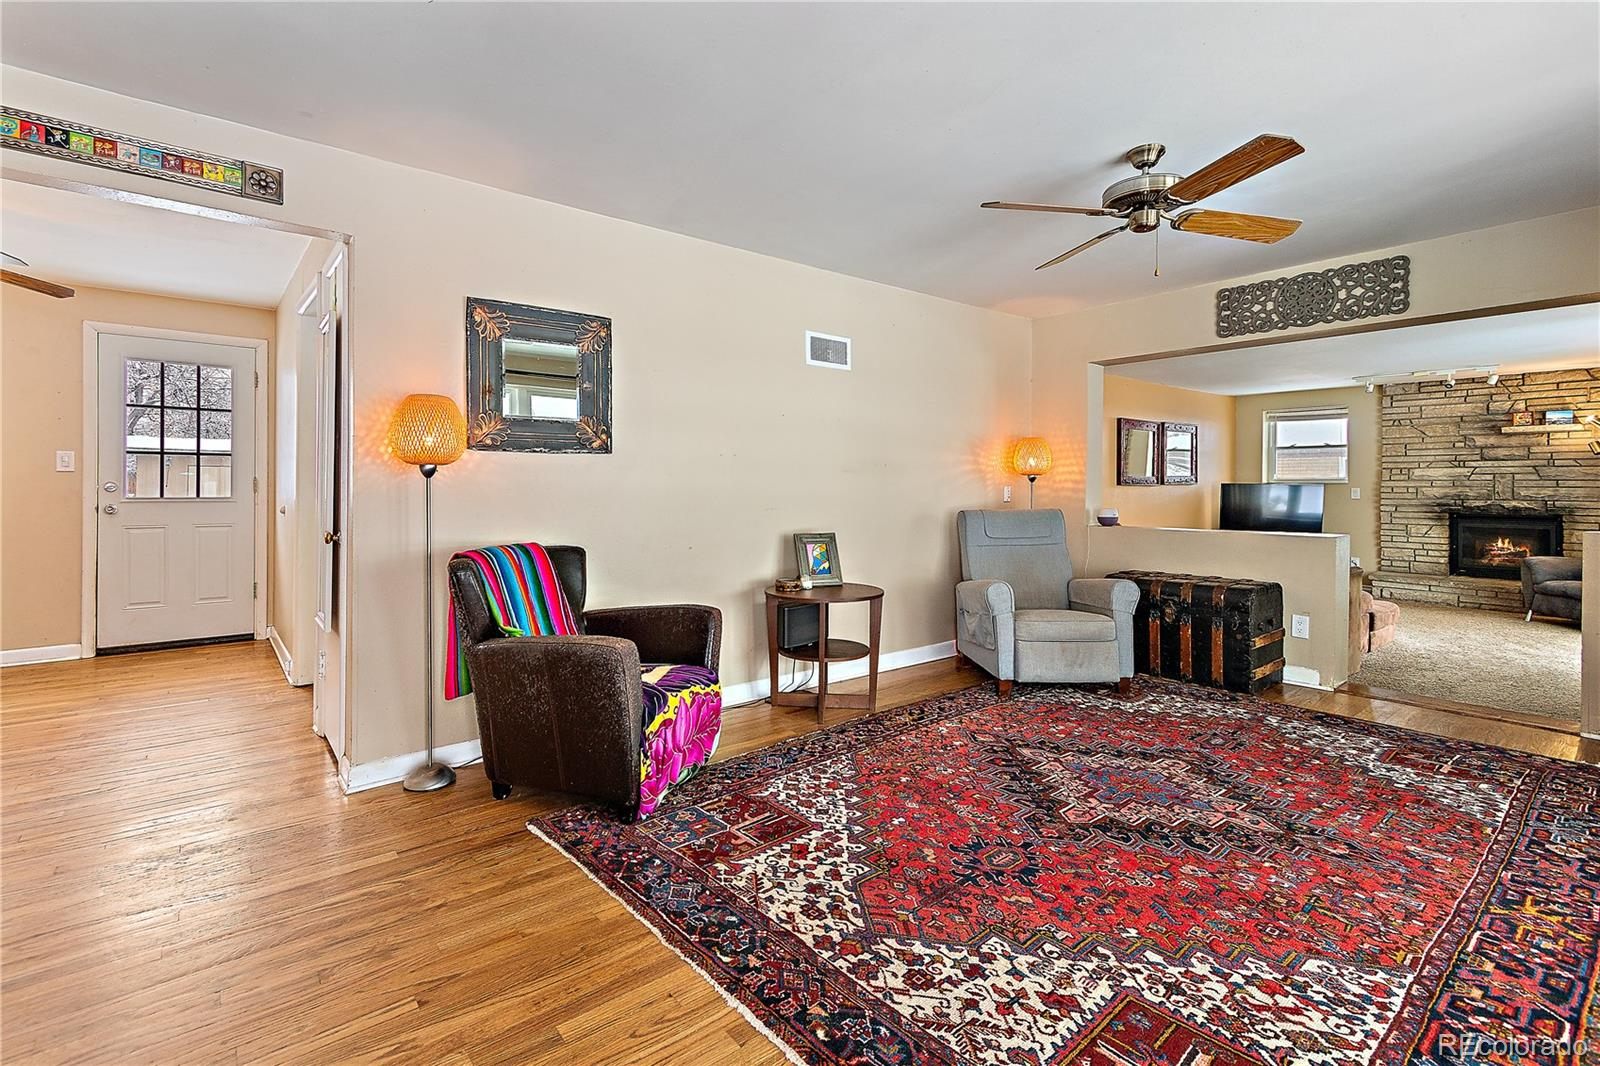 MLS# 5584211 - 4 - 8105 W 16th Place, Lakewood, CO 80214